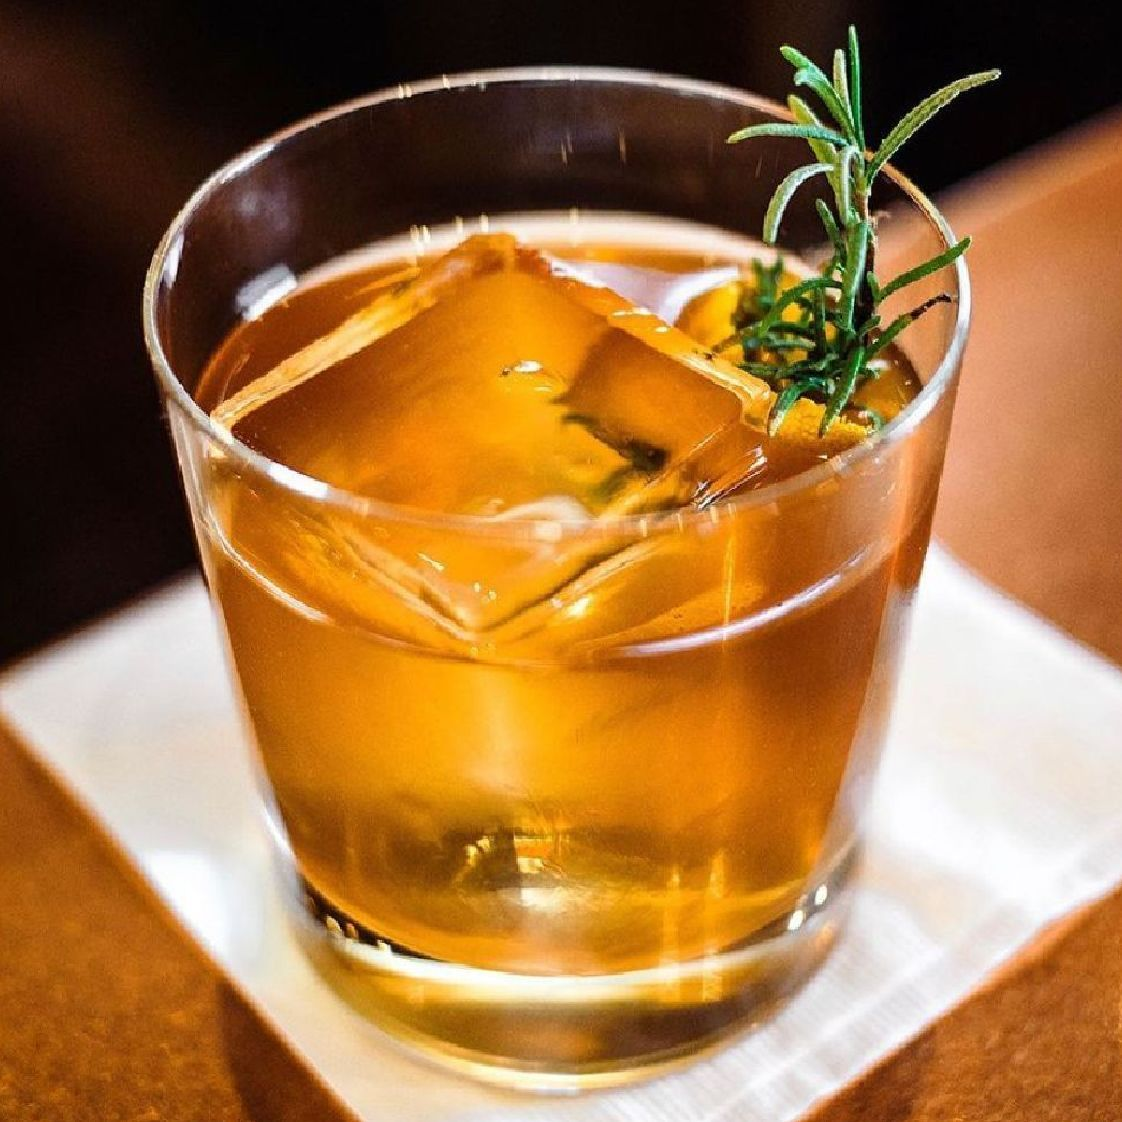 When coming up with this cocktail my intent was to create a riff on a Monte Carlo/Old Fashioned that was really smooth and easy to drink but wasn't too sweet. This cocktail is smooth as silver.